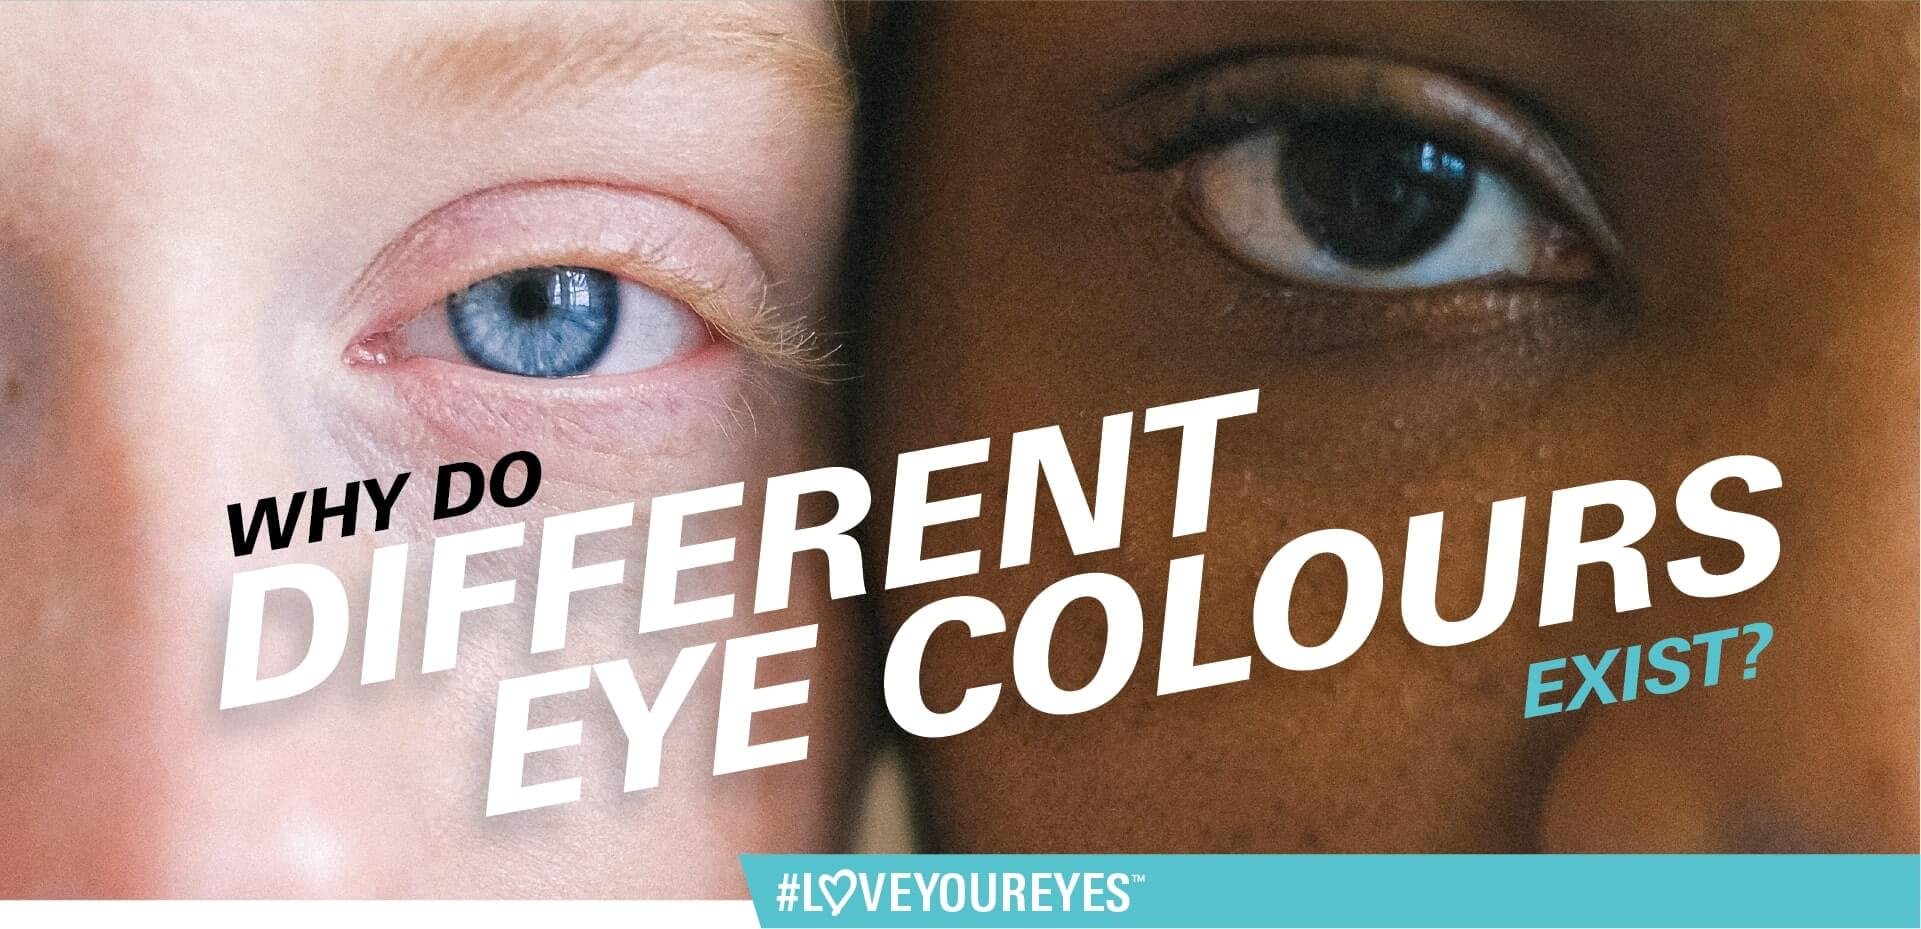 Why do different eye colours exist?